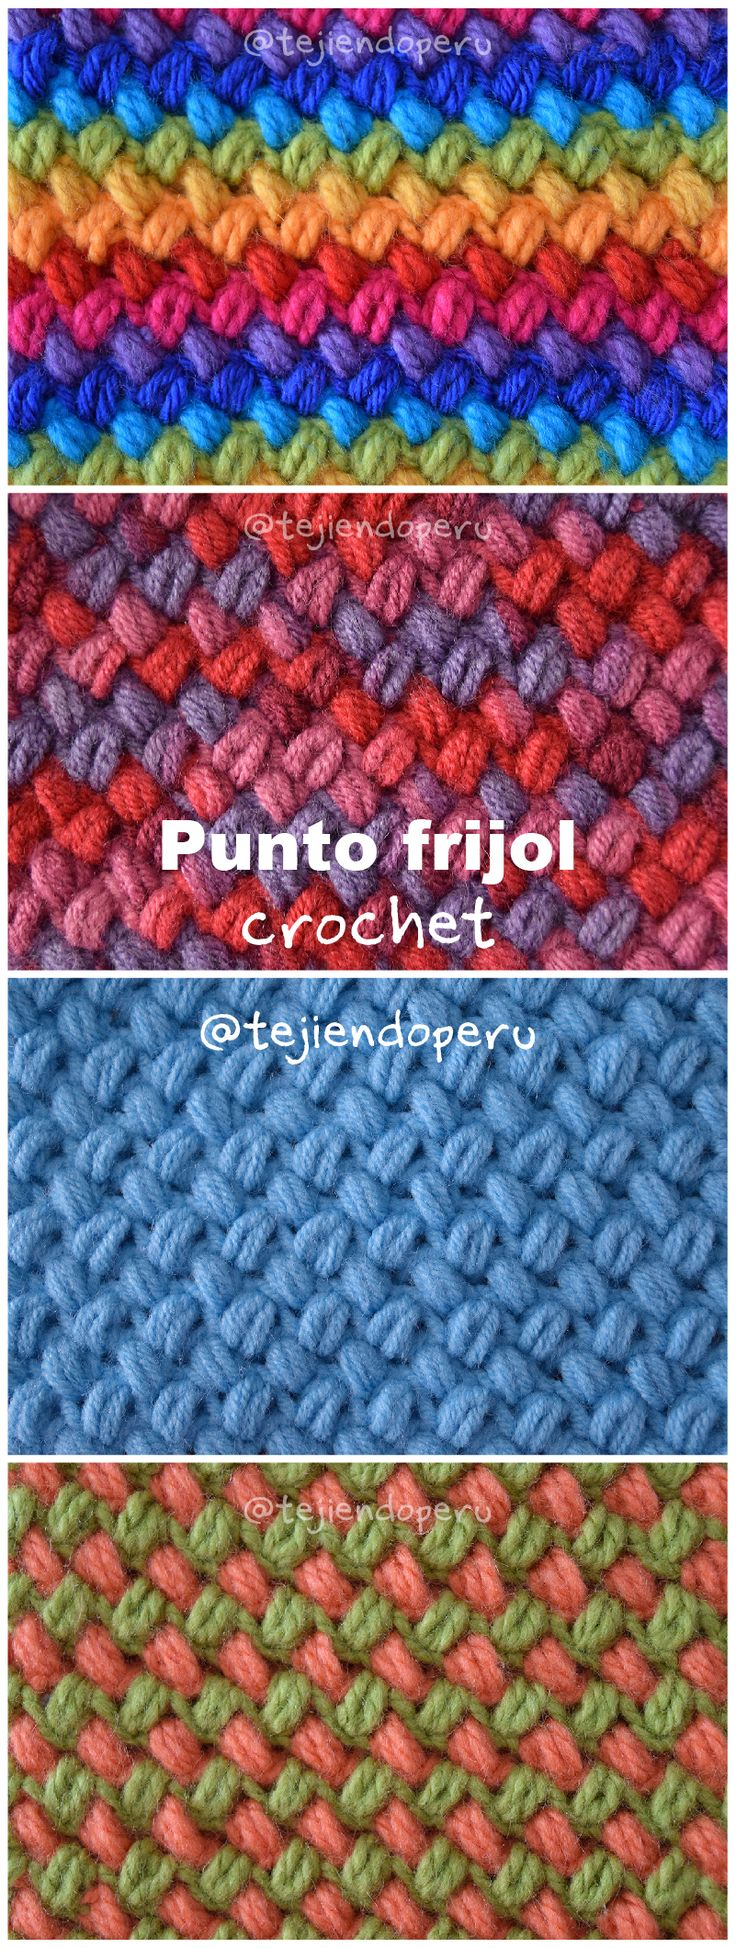 Crochet: punto frijol tejido a crochet paso a paso (video tutorial!). Crochet bean stitch